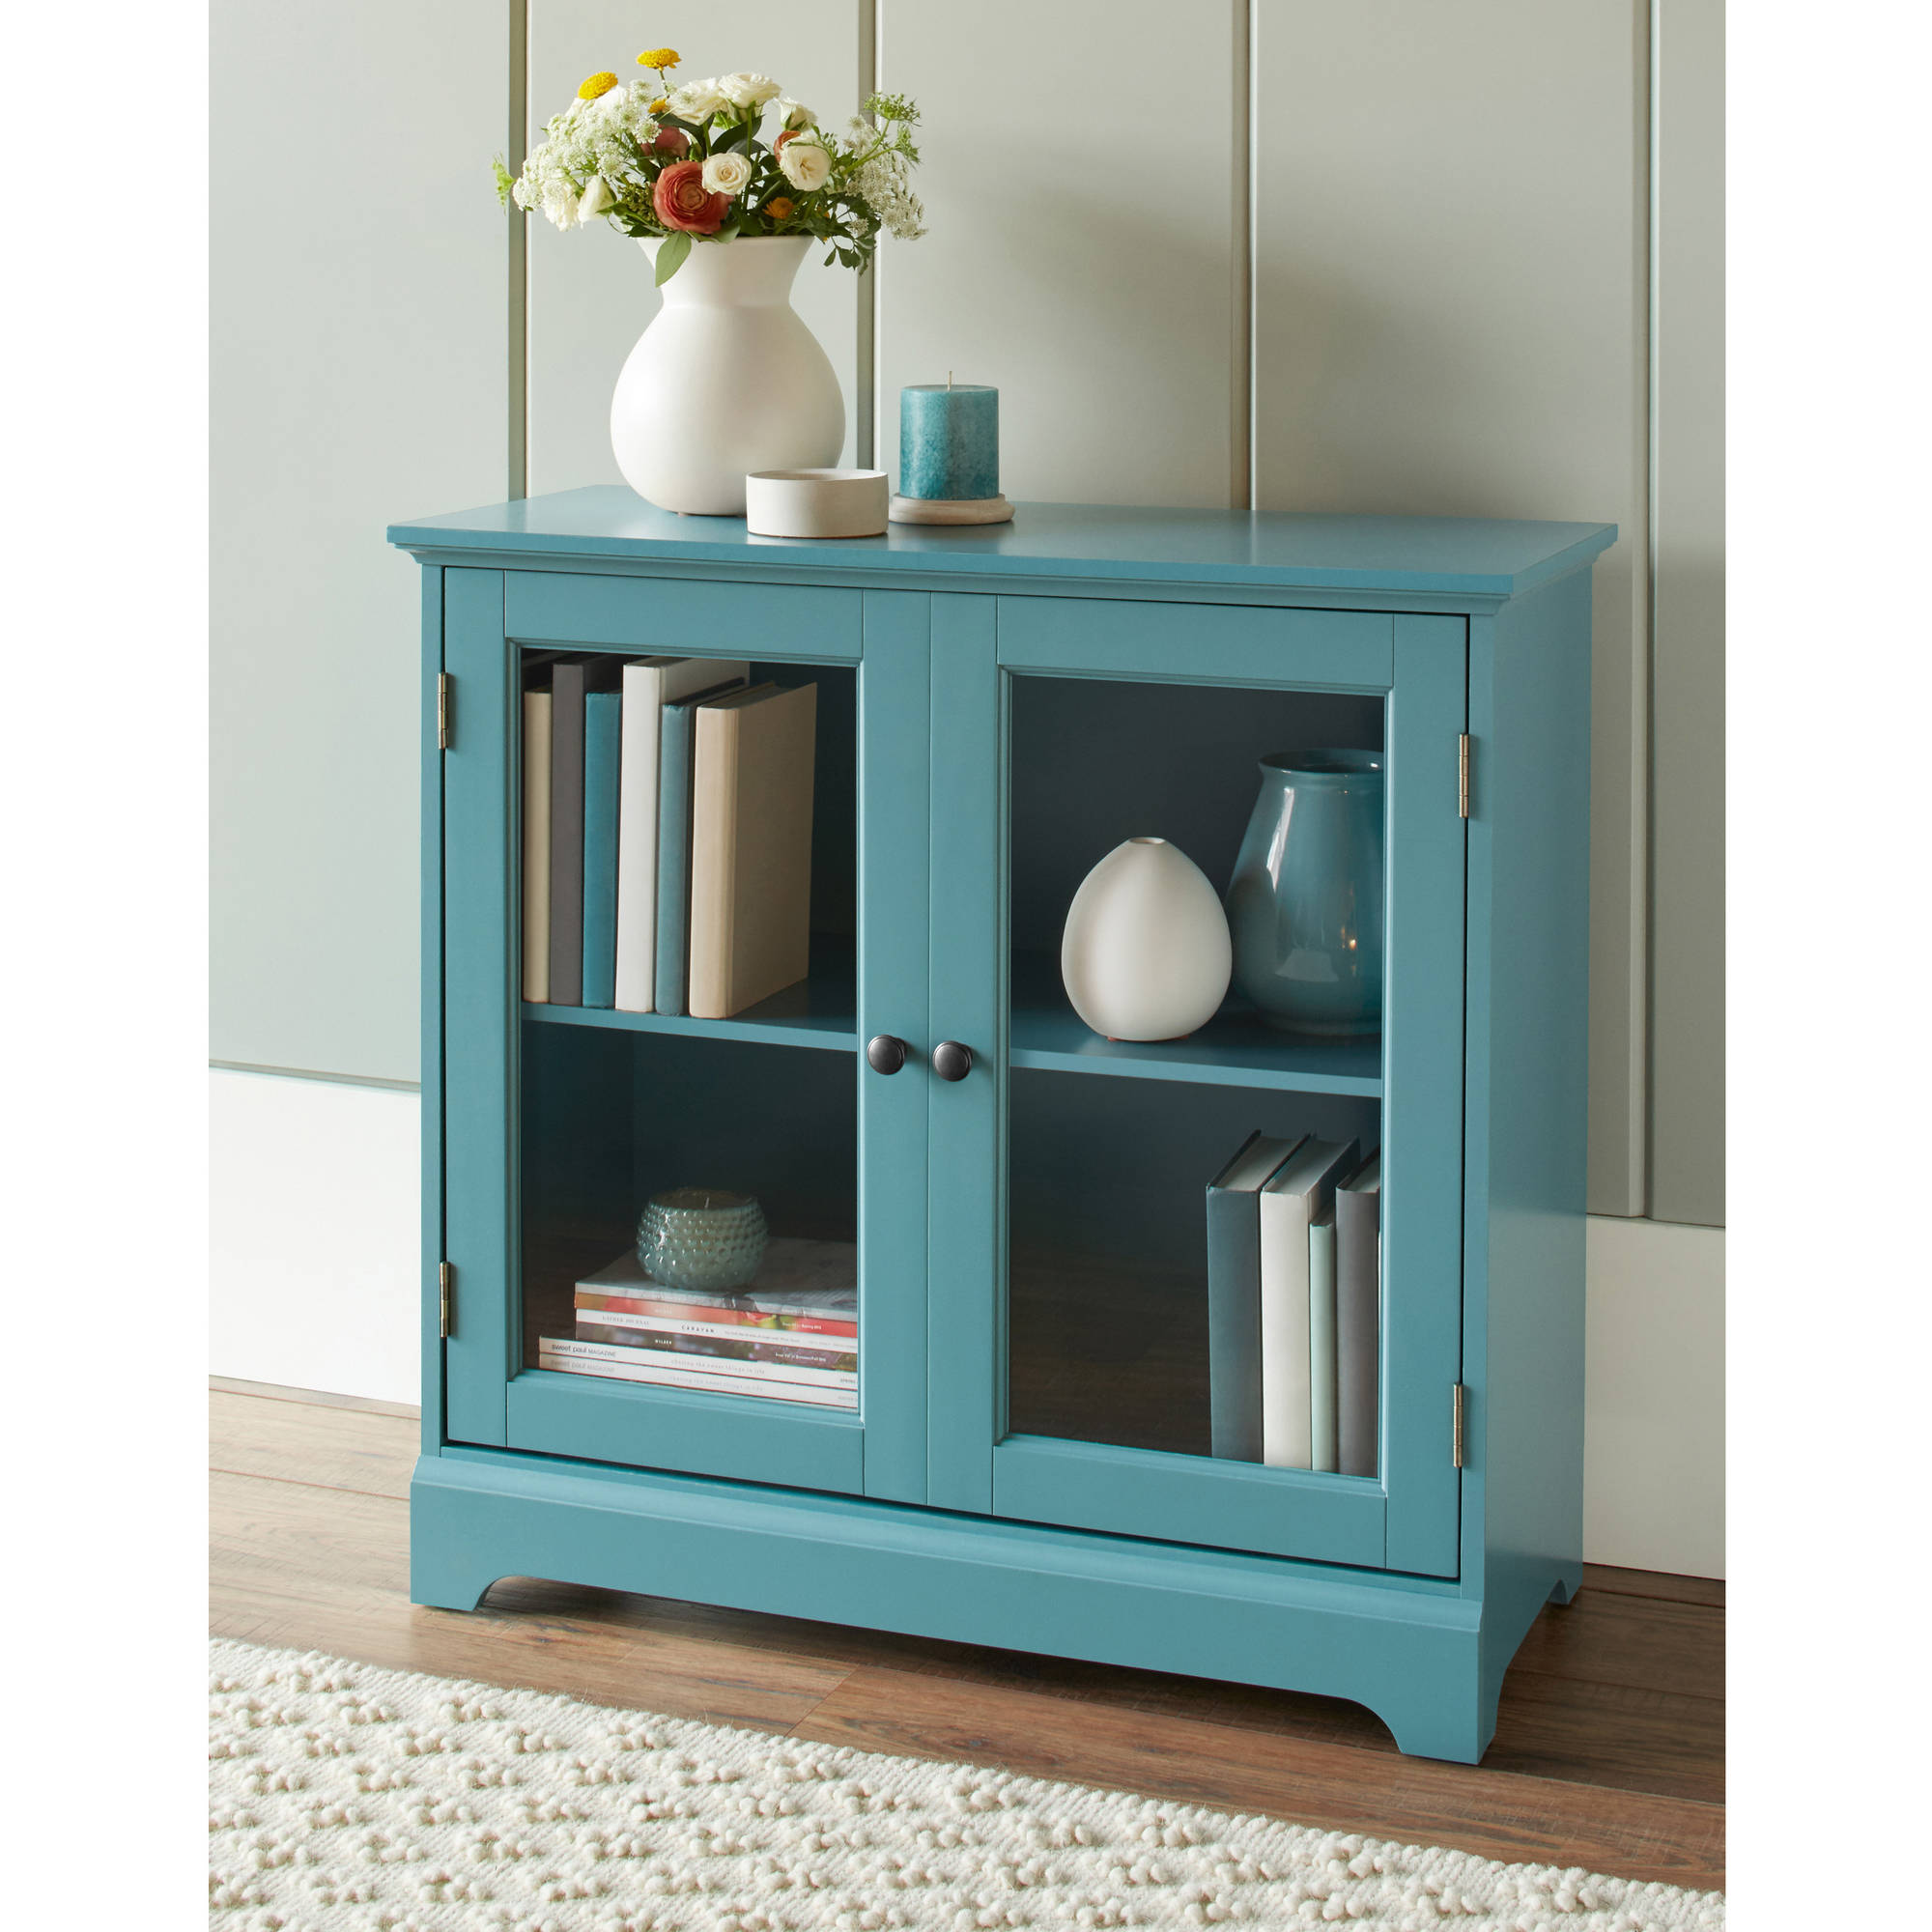 torino medicine cabinet with glass door espresso accent table doors outdoor umbrella cantilever turquoise placemats and napkins small bedside lamps westminster furniture acrylic